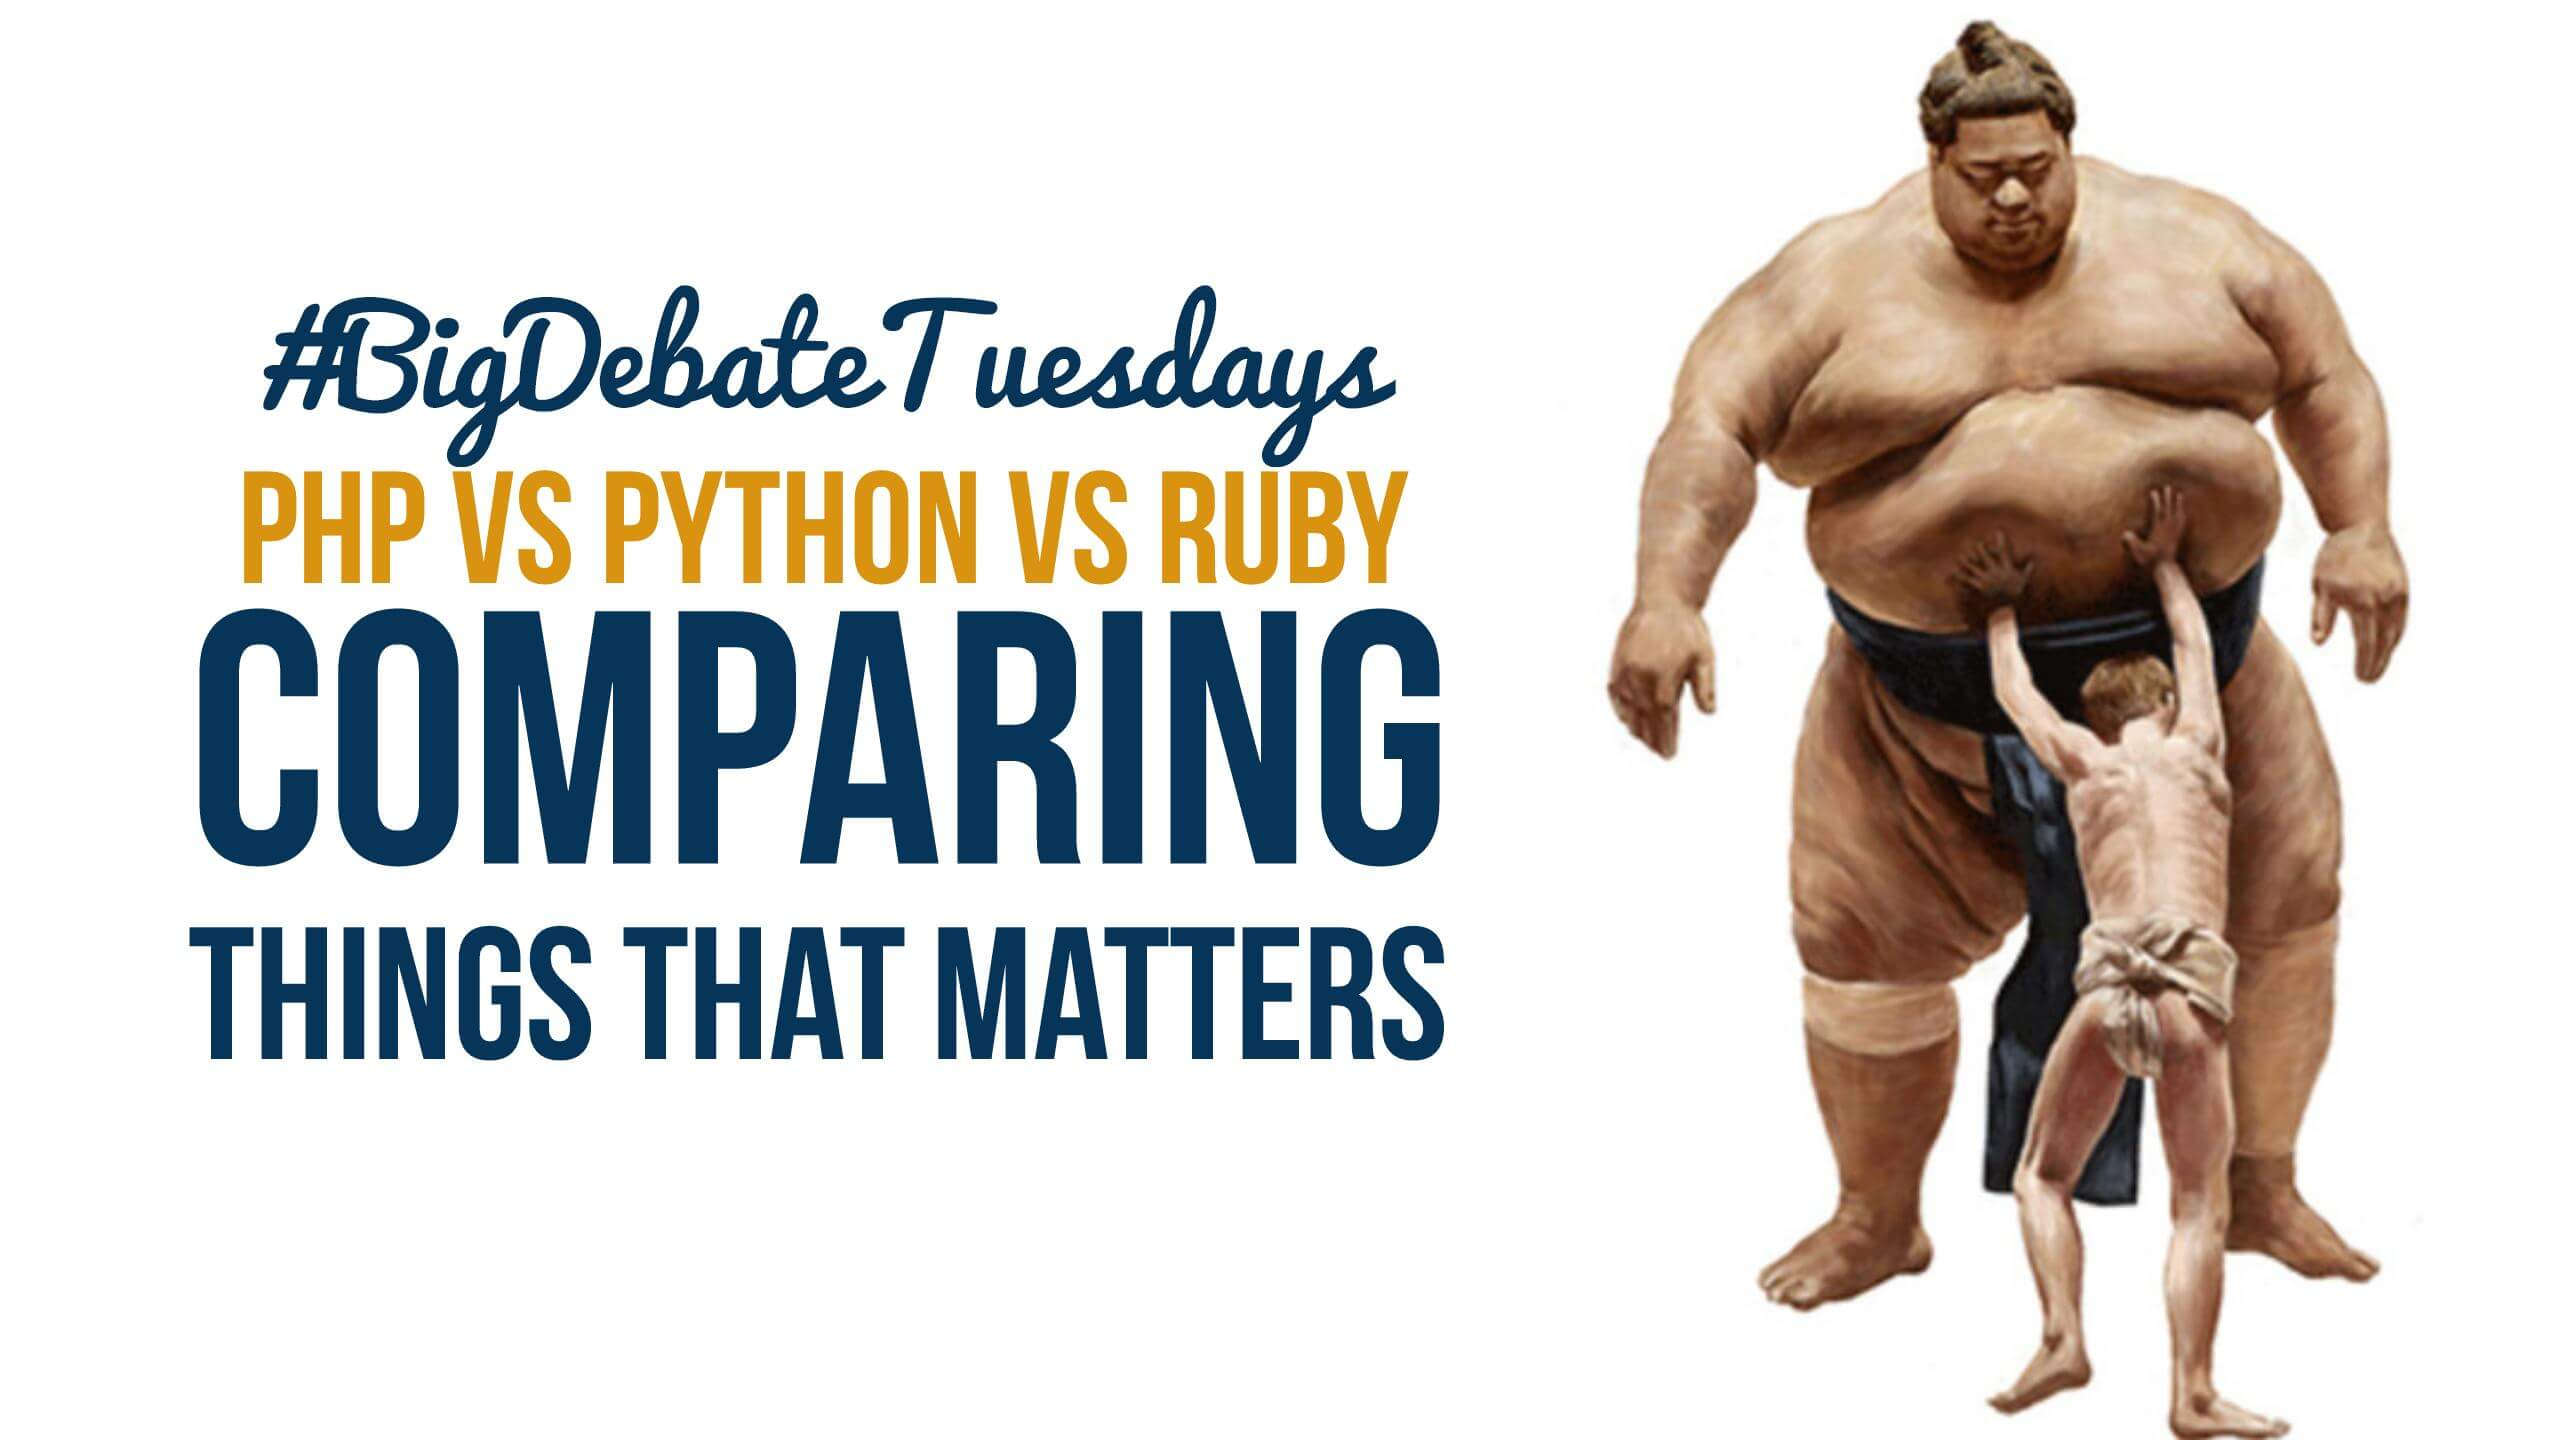 PHP_Vs_Python_Vs_Ruby